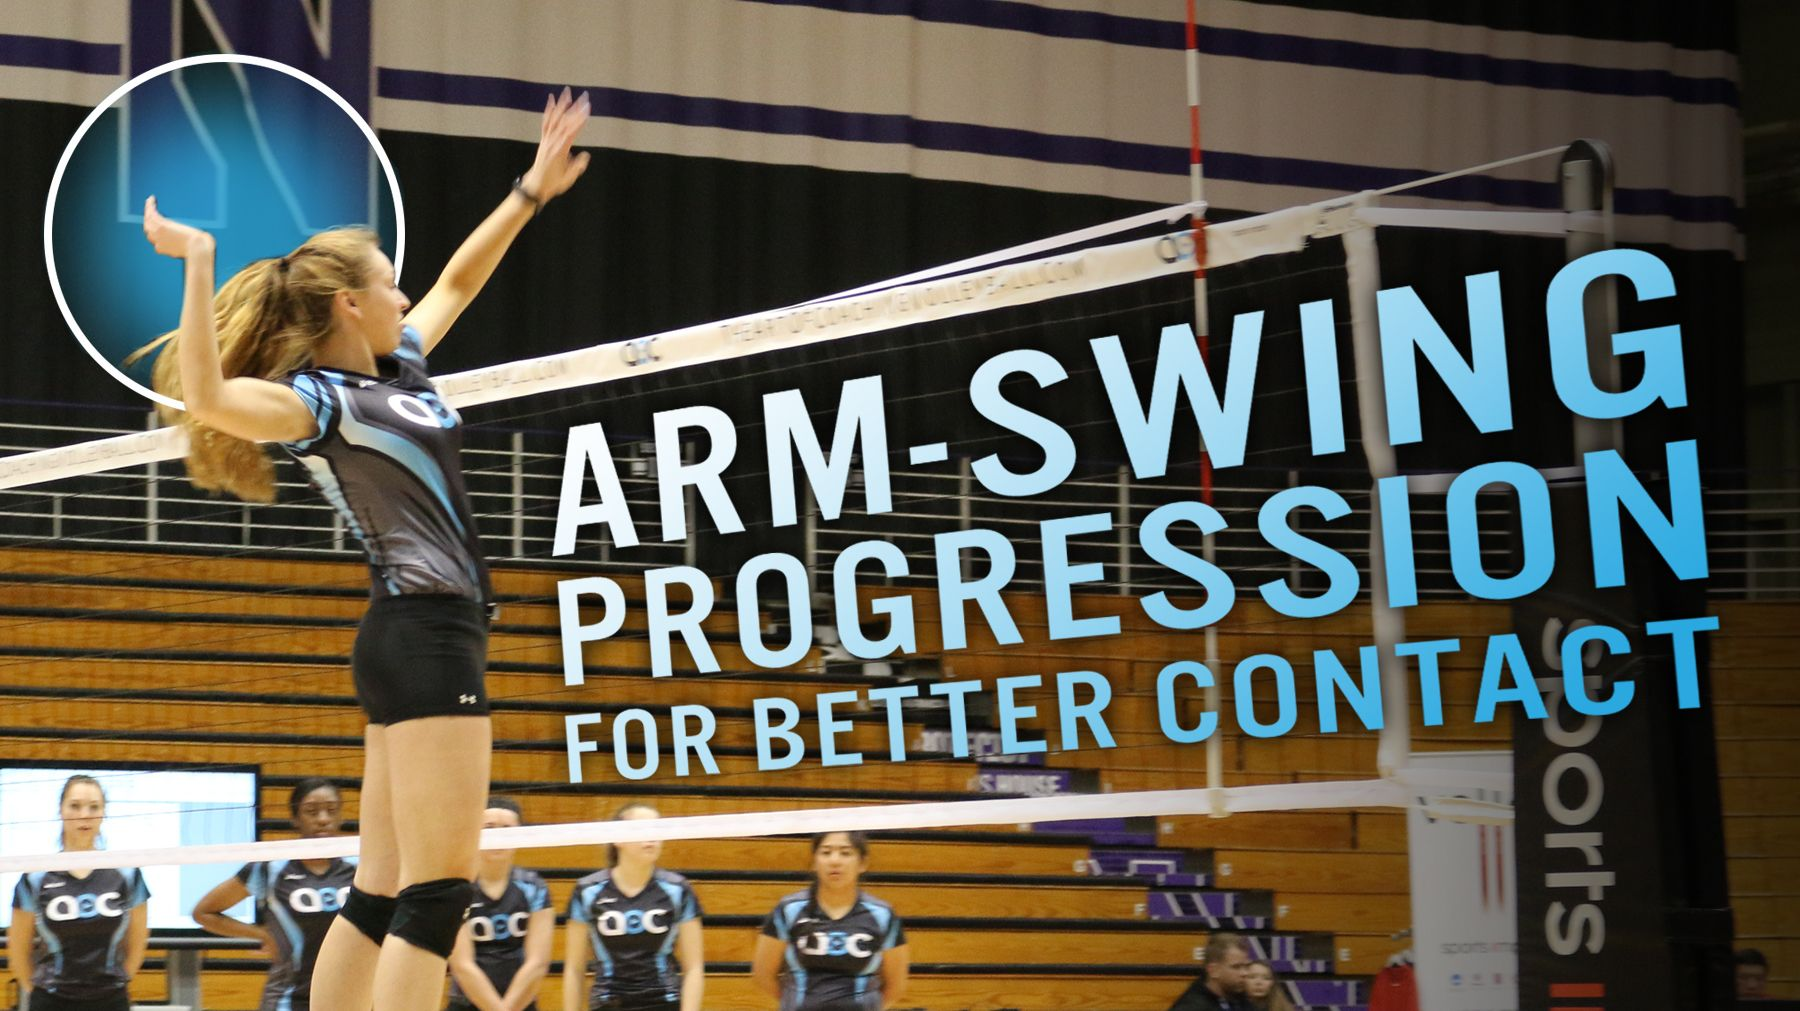 Dave Shondell Arm Swing Progression For Better Contact The Art Of Coaching Volleyball Volleyball Training Volleyball Workouts Volleyball Team